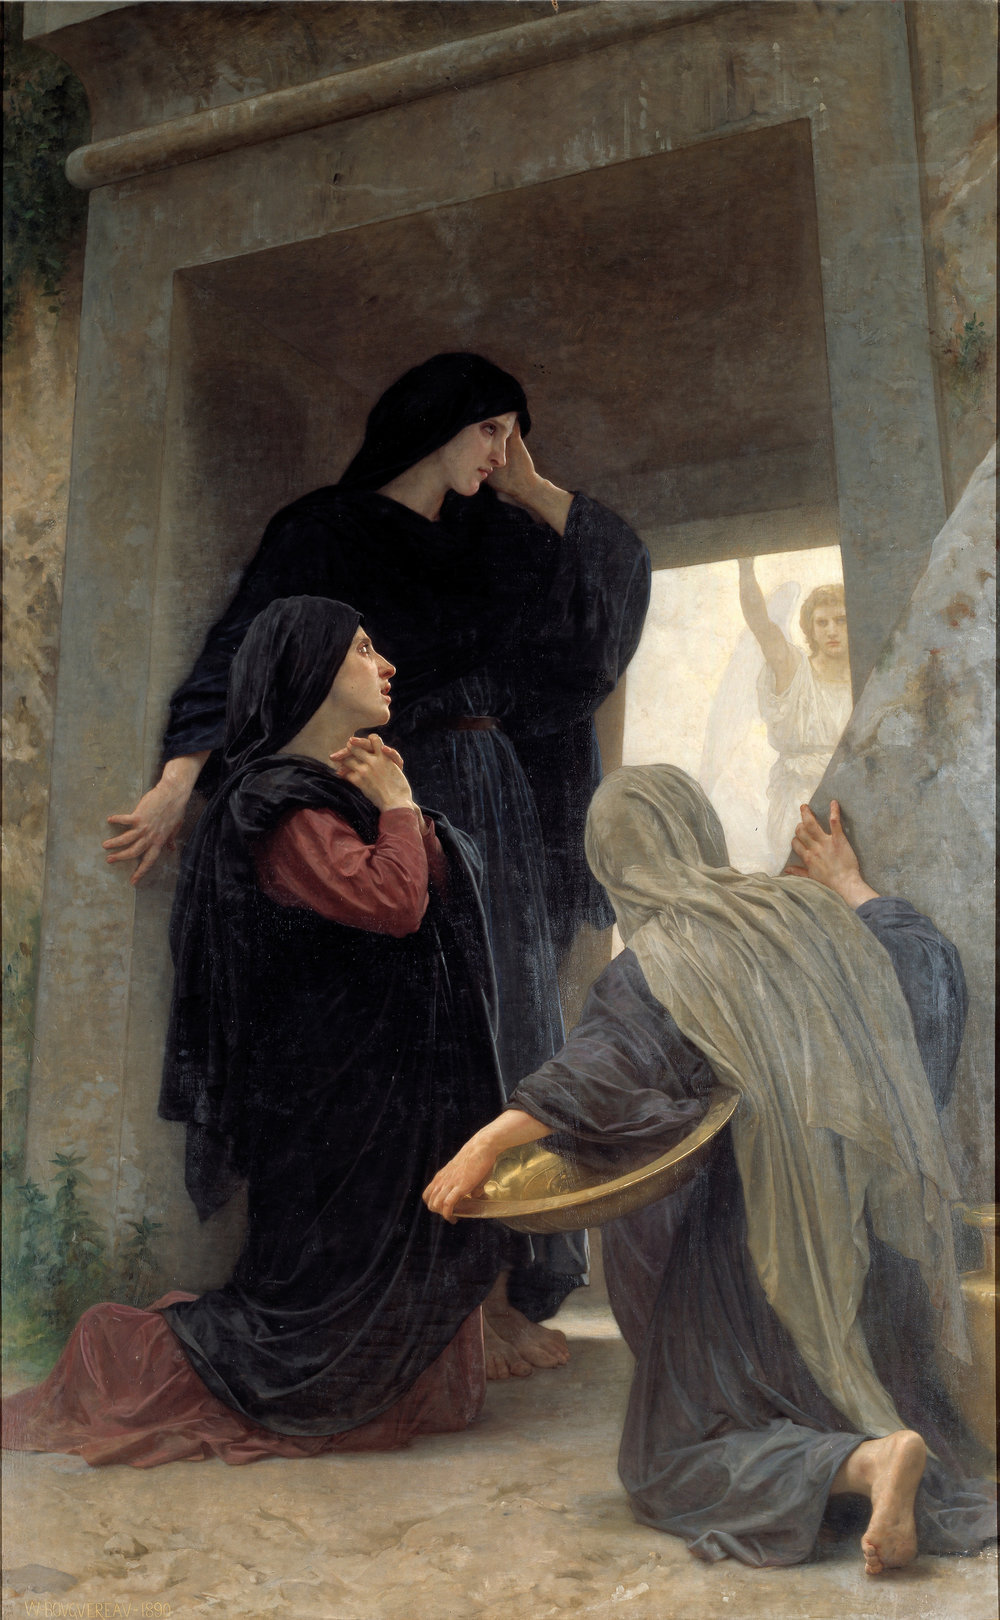 William-Adolphe_Bouguereau_(1825-1905)_-_Le_saintes_femmes_au_tombeau_(1890)_img_2.jpg